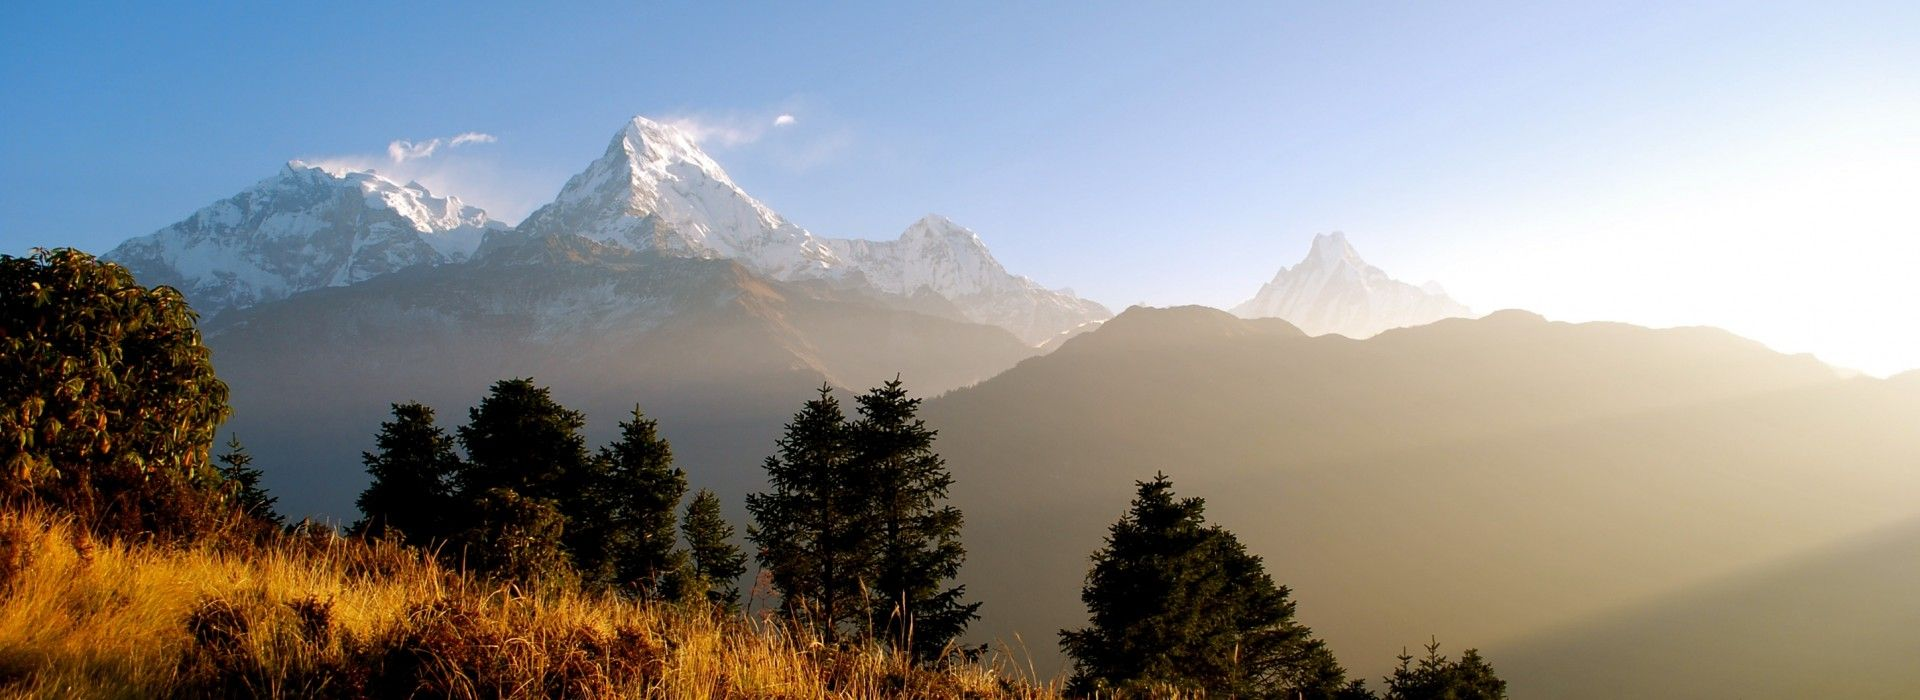 Natural landmarks sightseeing Tours in Annapurna Region